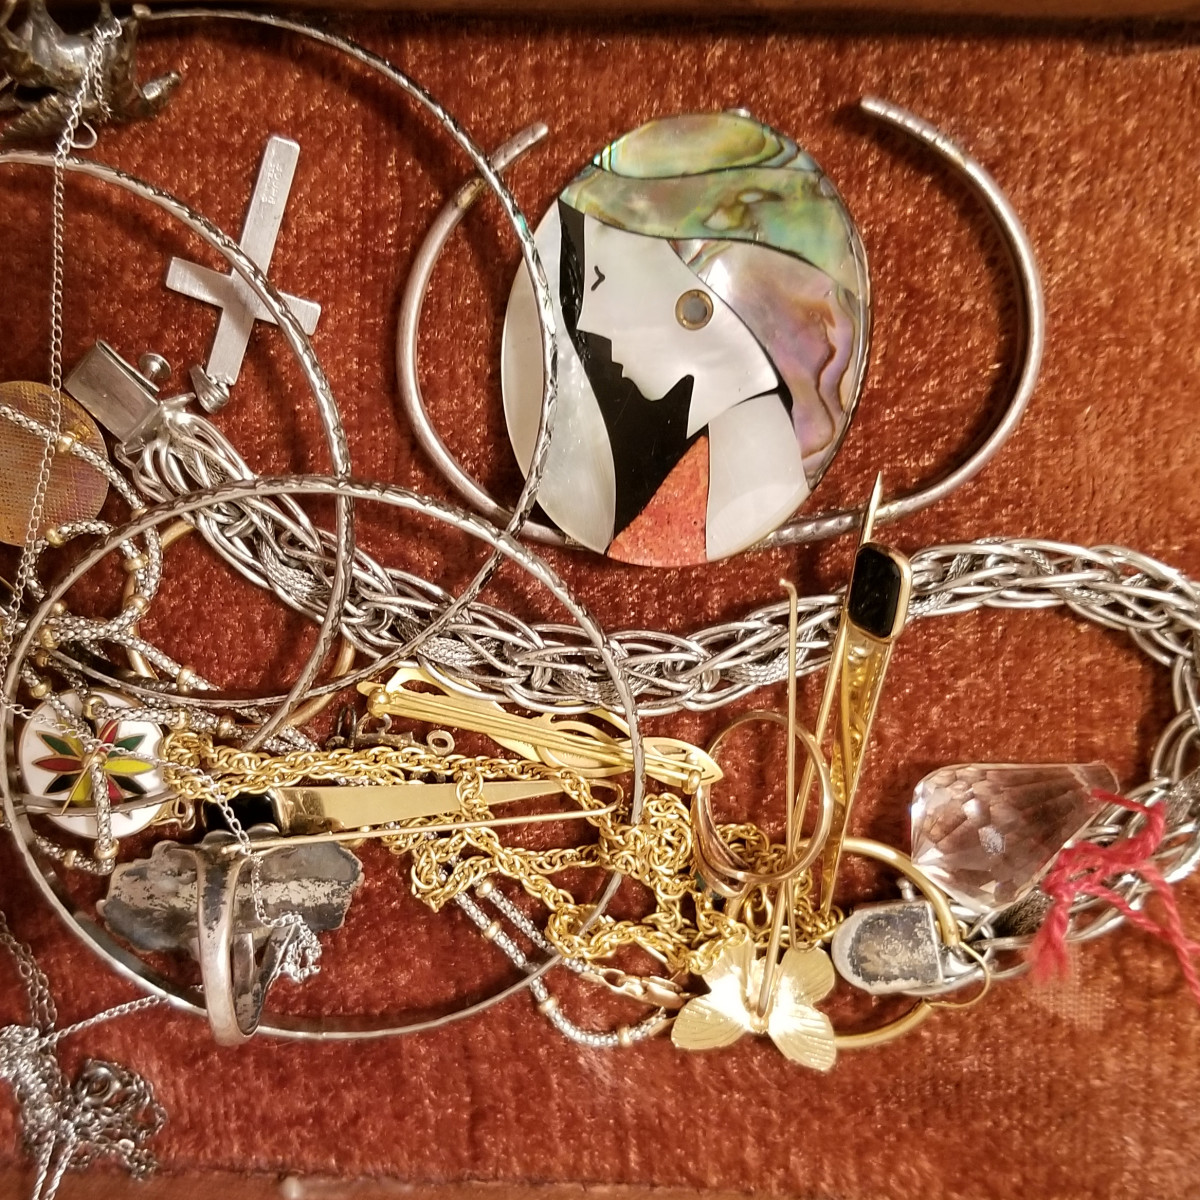 The dregs of fashions past will dwell forever in the tangled mess of the old jewelry box. This is no big deal if they weren't pricey to begin with!